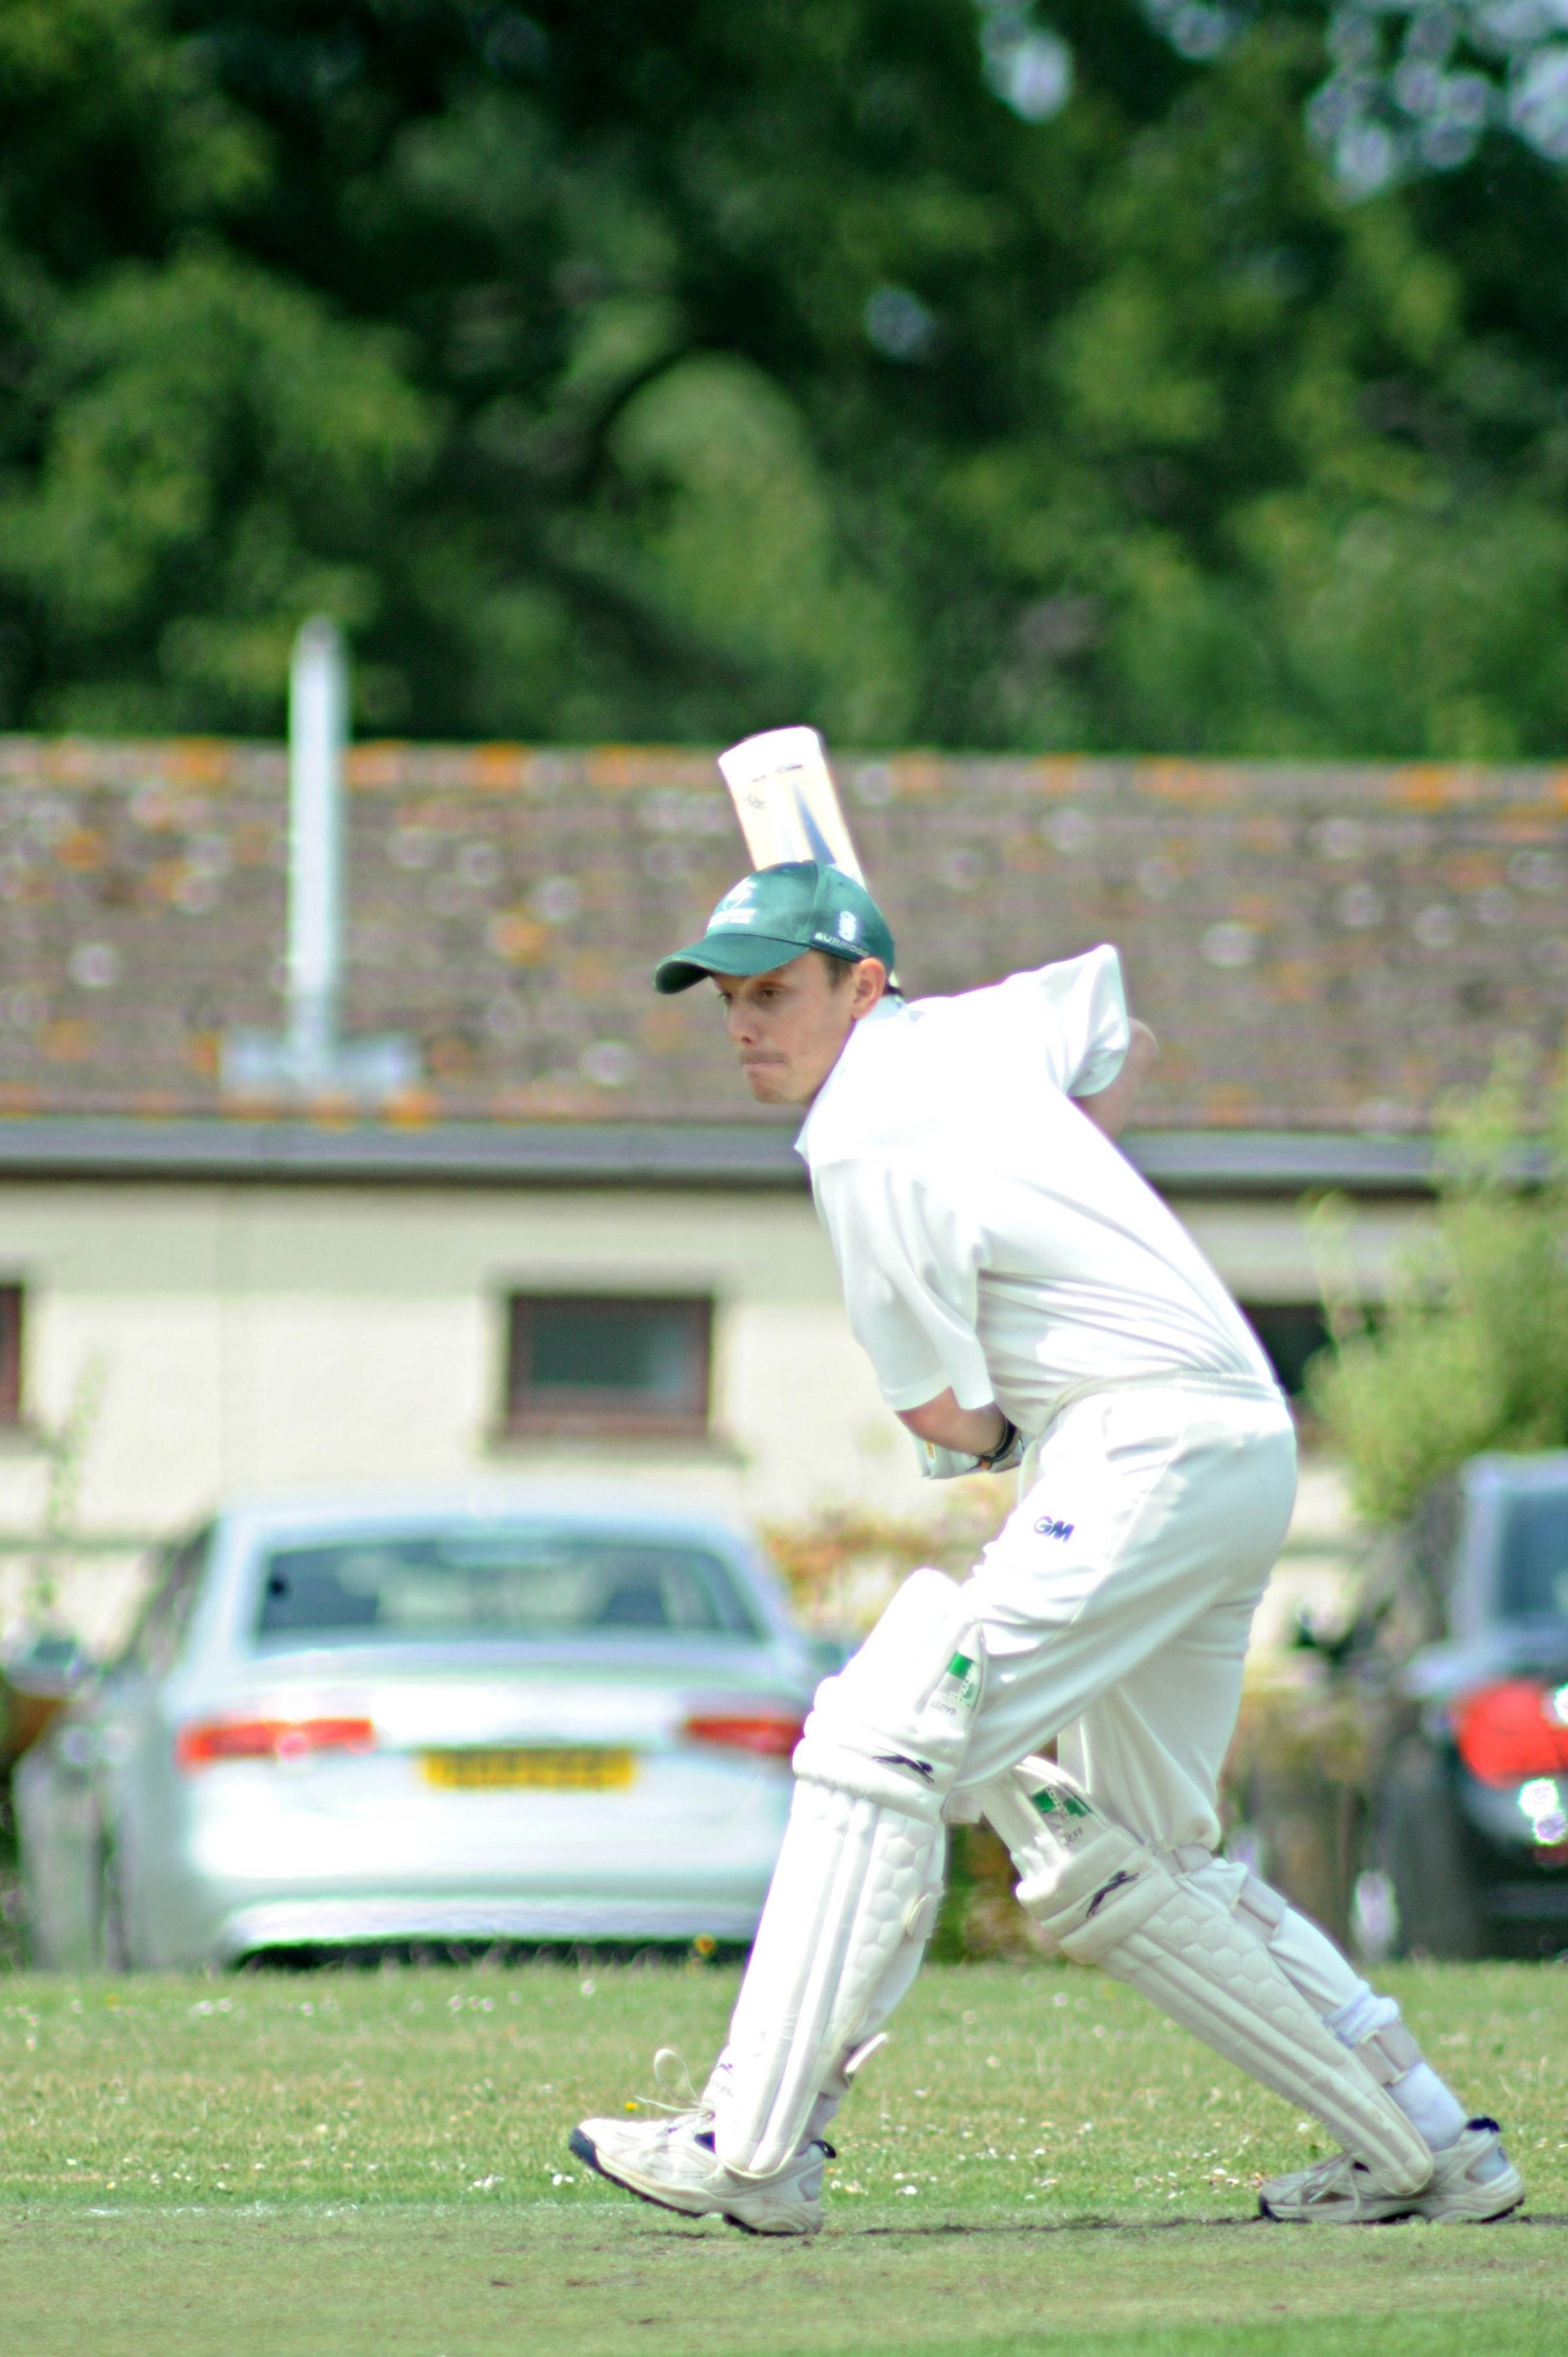 Cricket: Old Down climb out of relegation zone after shocking league leaders Almondsbury